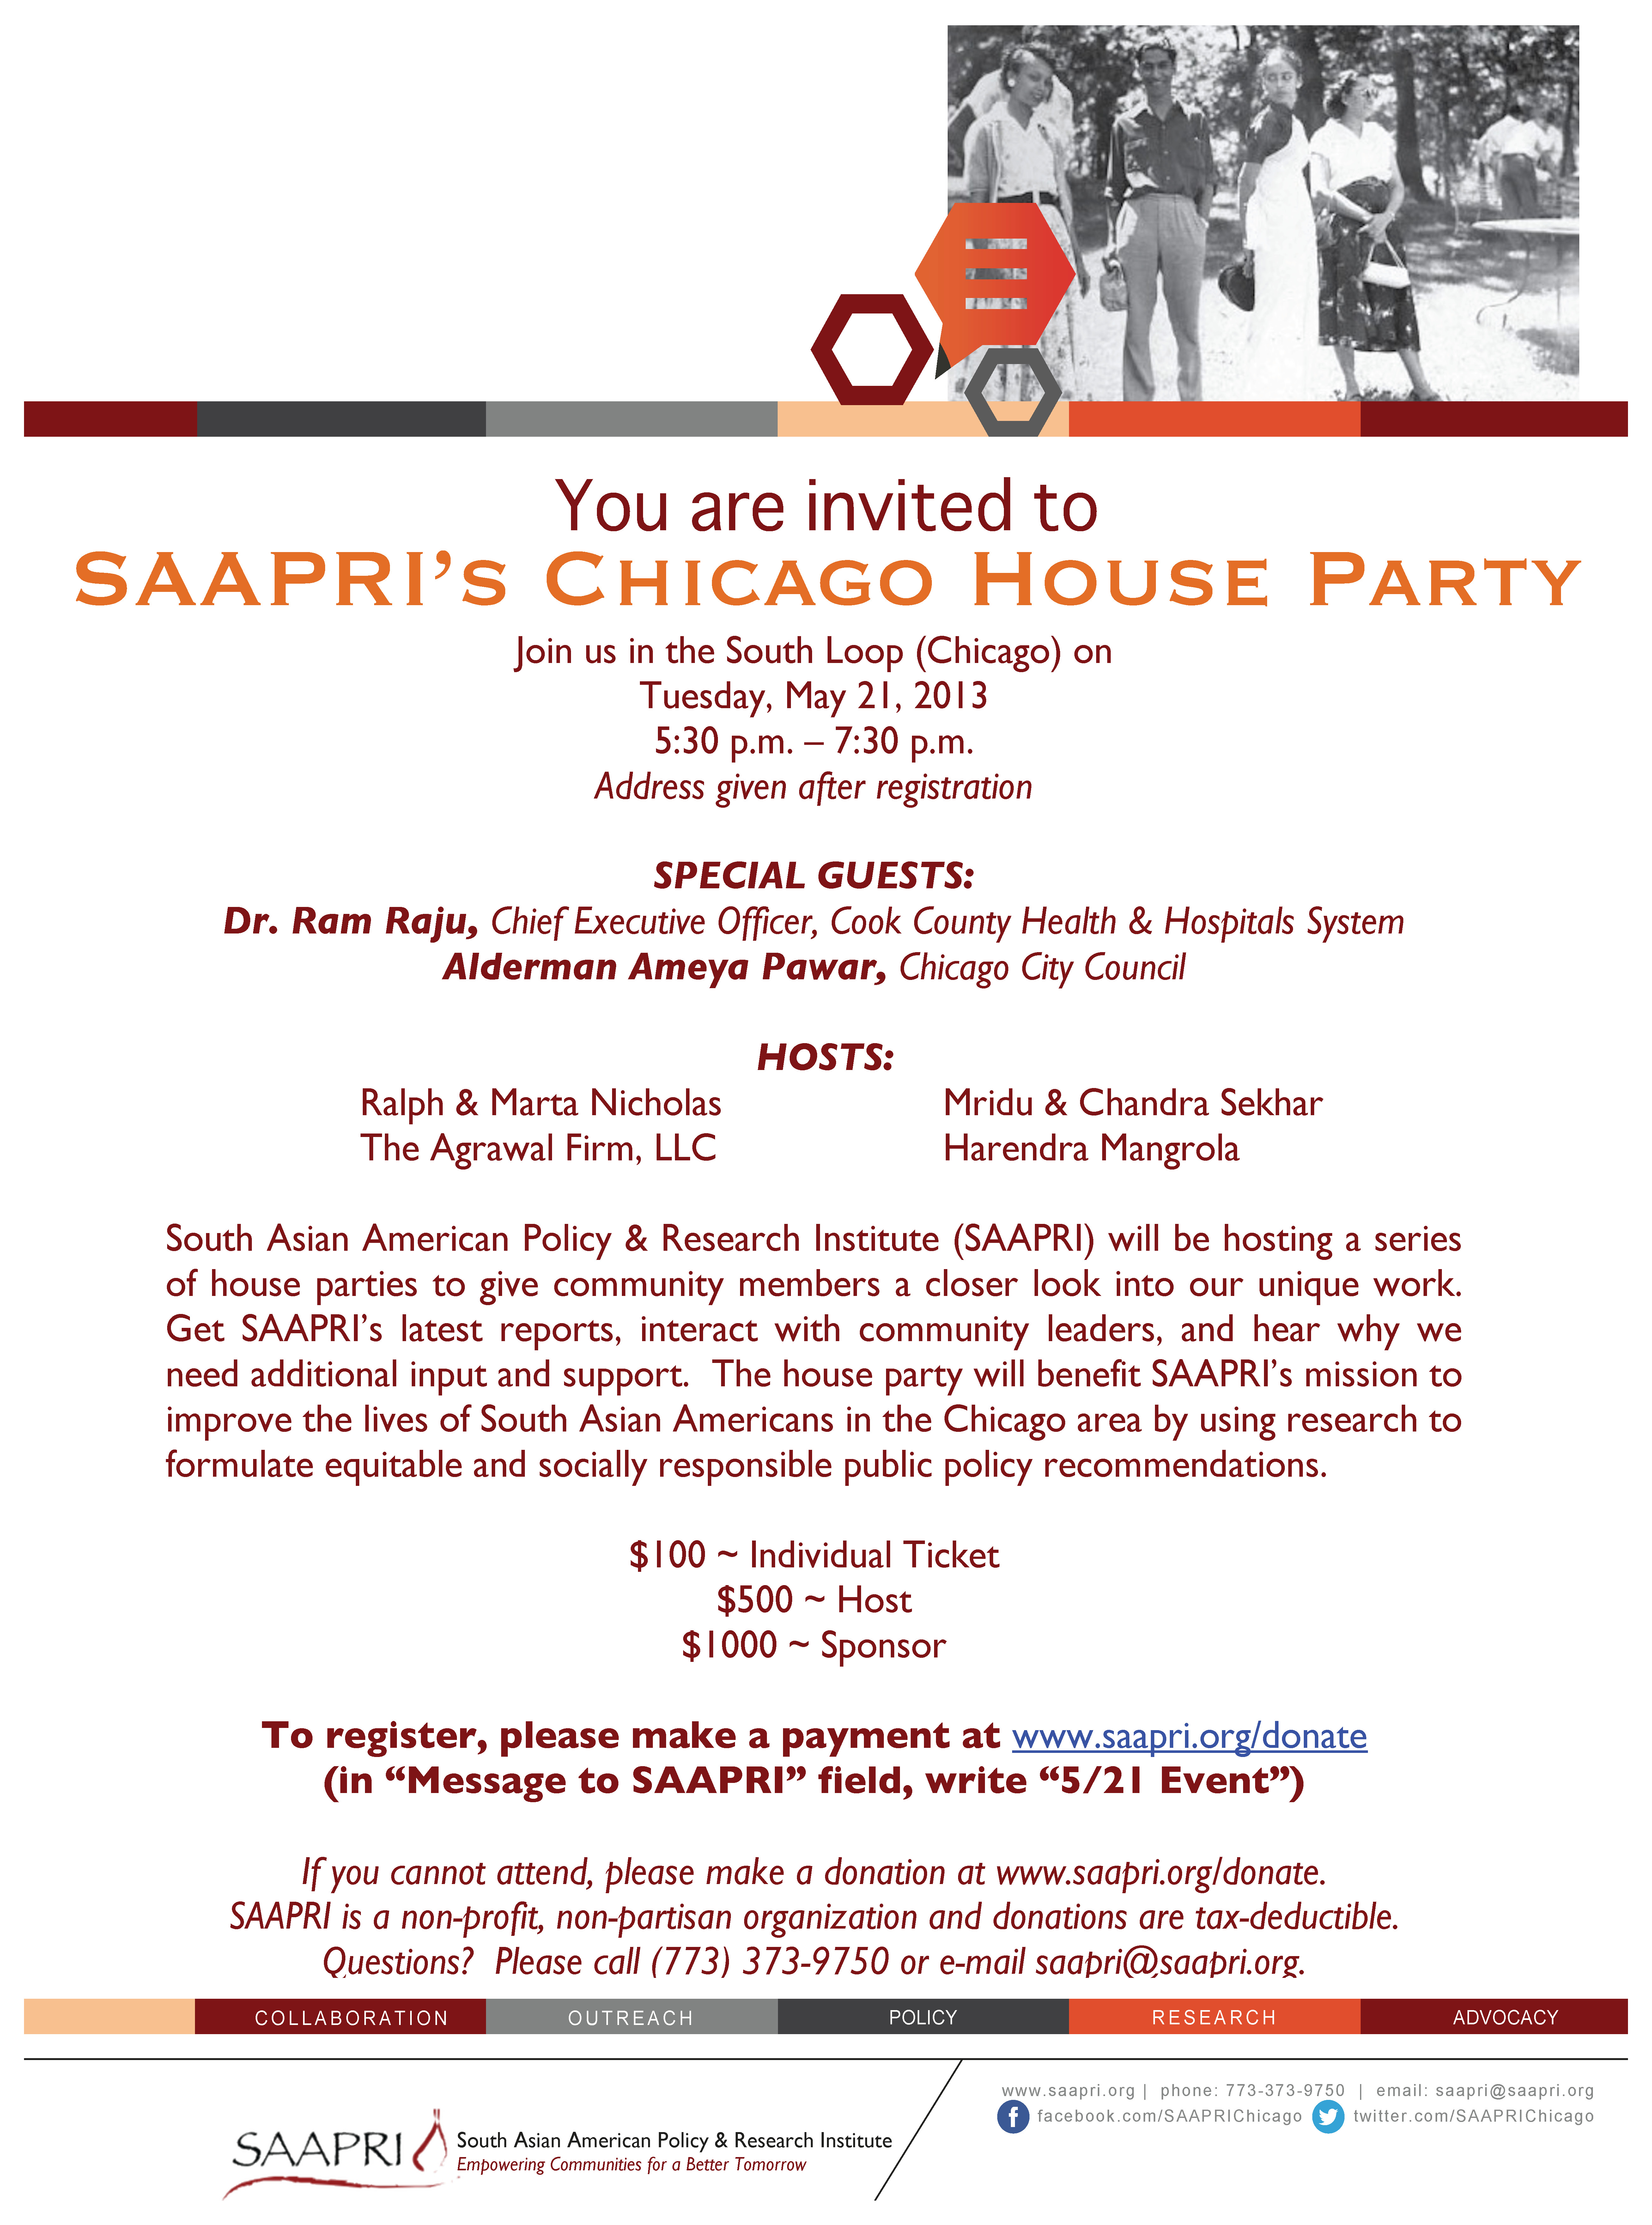 SAAPRI Chicago House Party Invitation